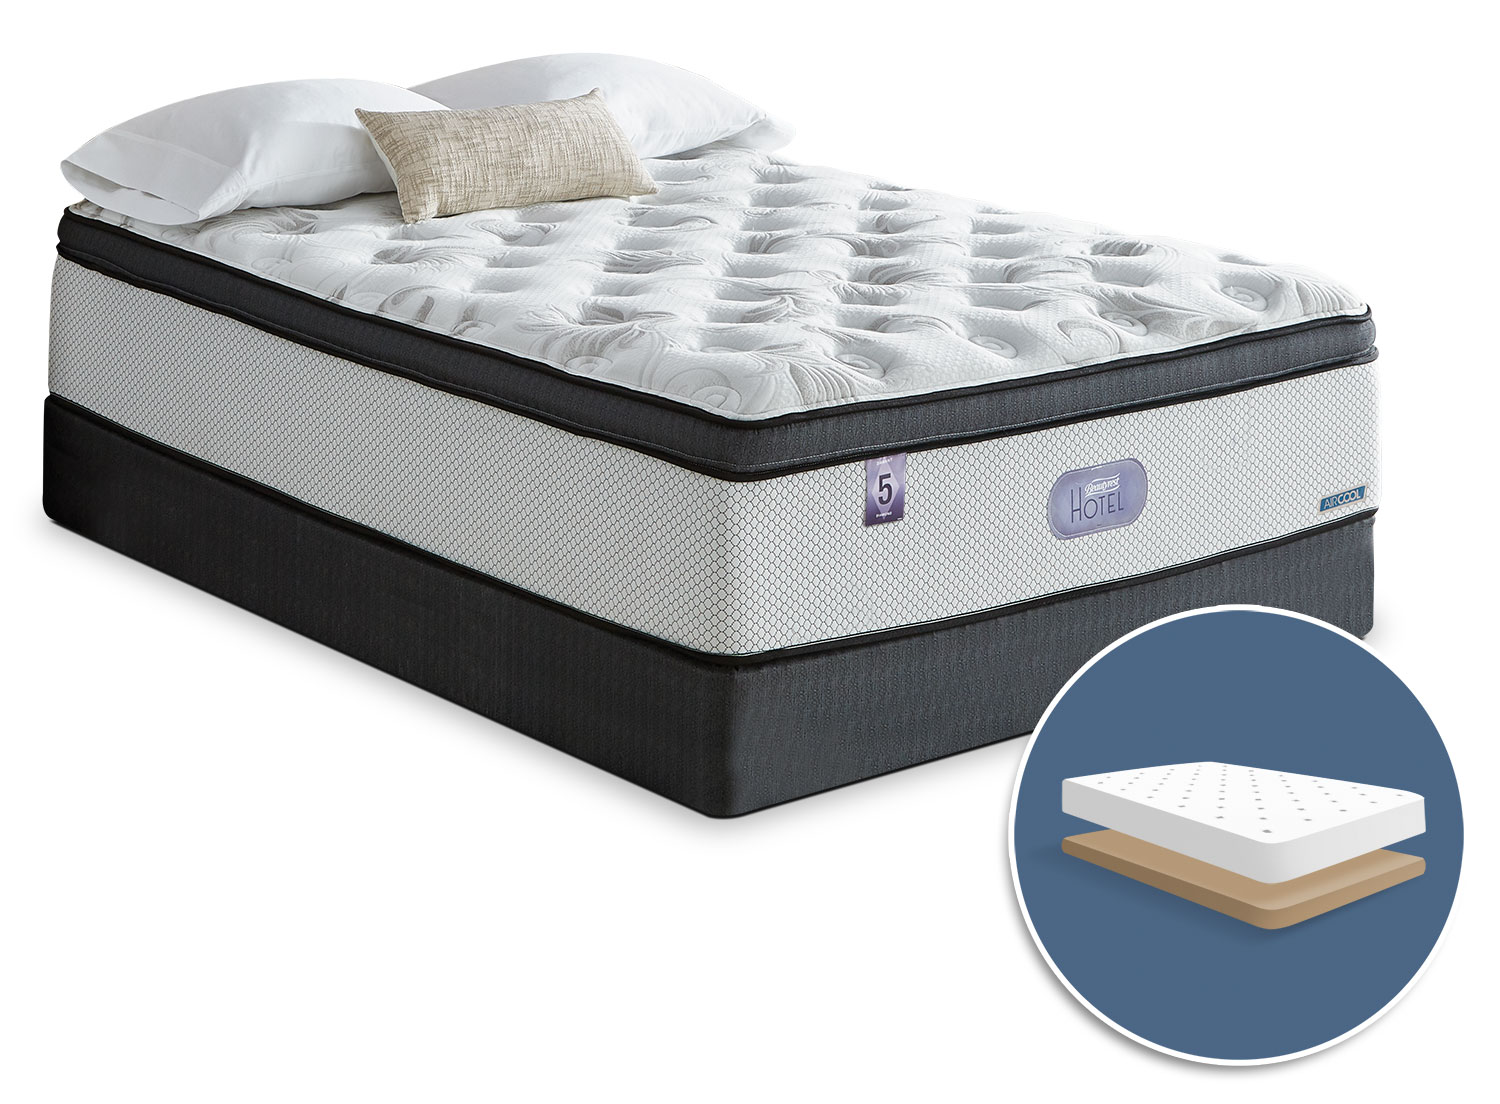 Mattresses and Bedding - Simmons Beautyrest® Hotel Diamond 5.0 Comfort Top Firm Low-Profile King Mattress Set